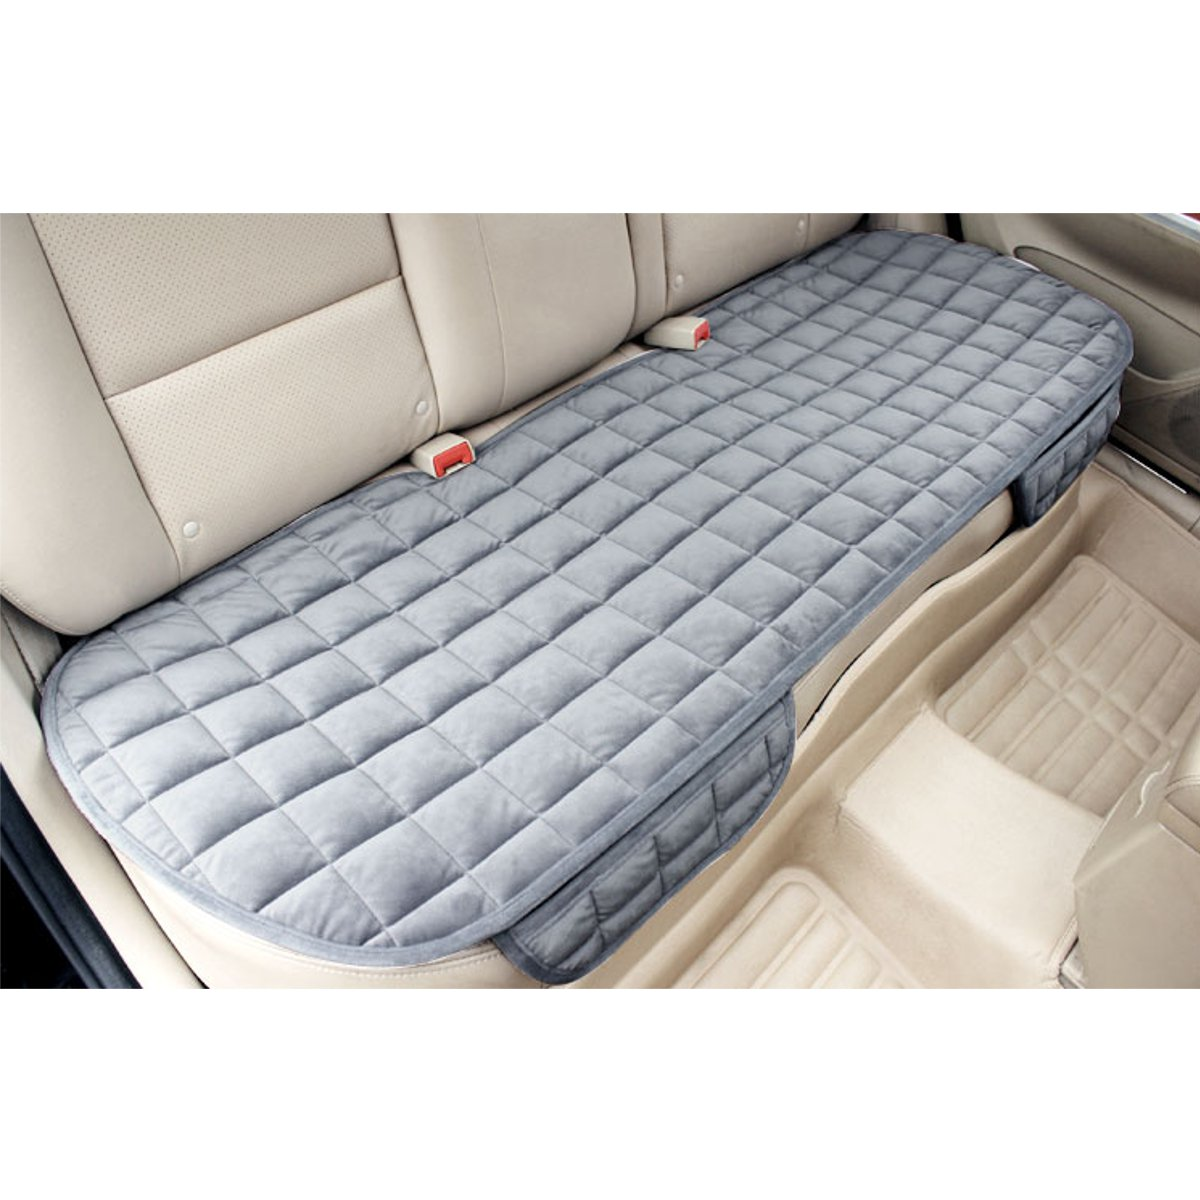 Universal Square Wistiti Sponge Rear Back Row Car Seat Cover Protector Mat Auto Chair Cushion